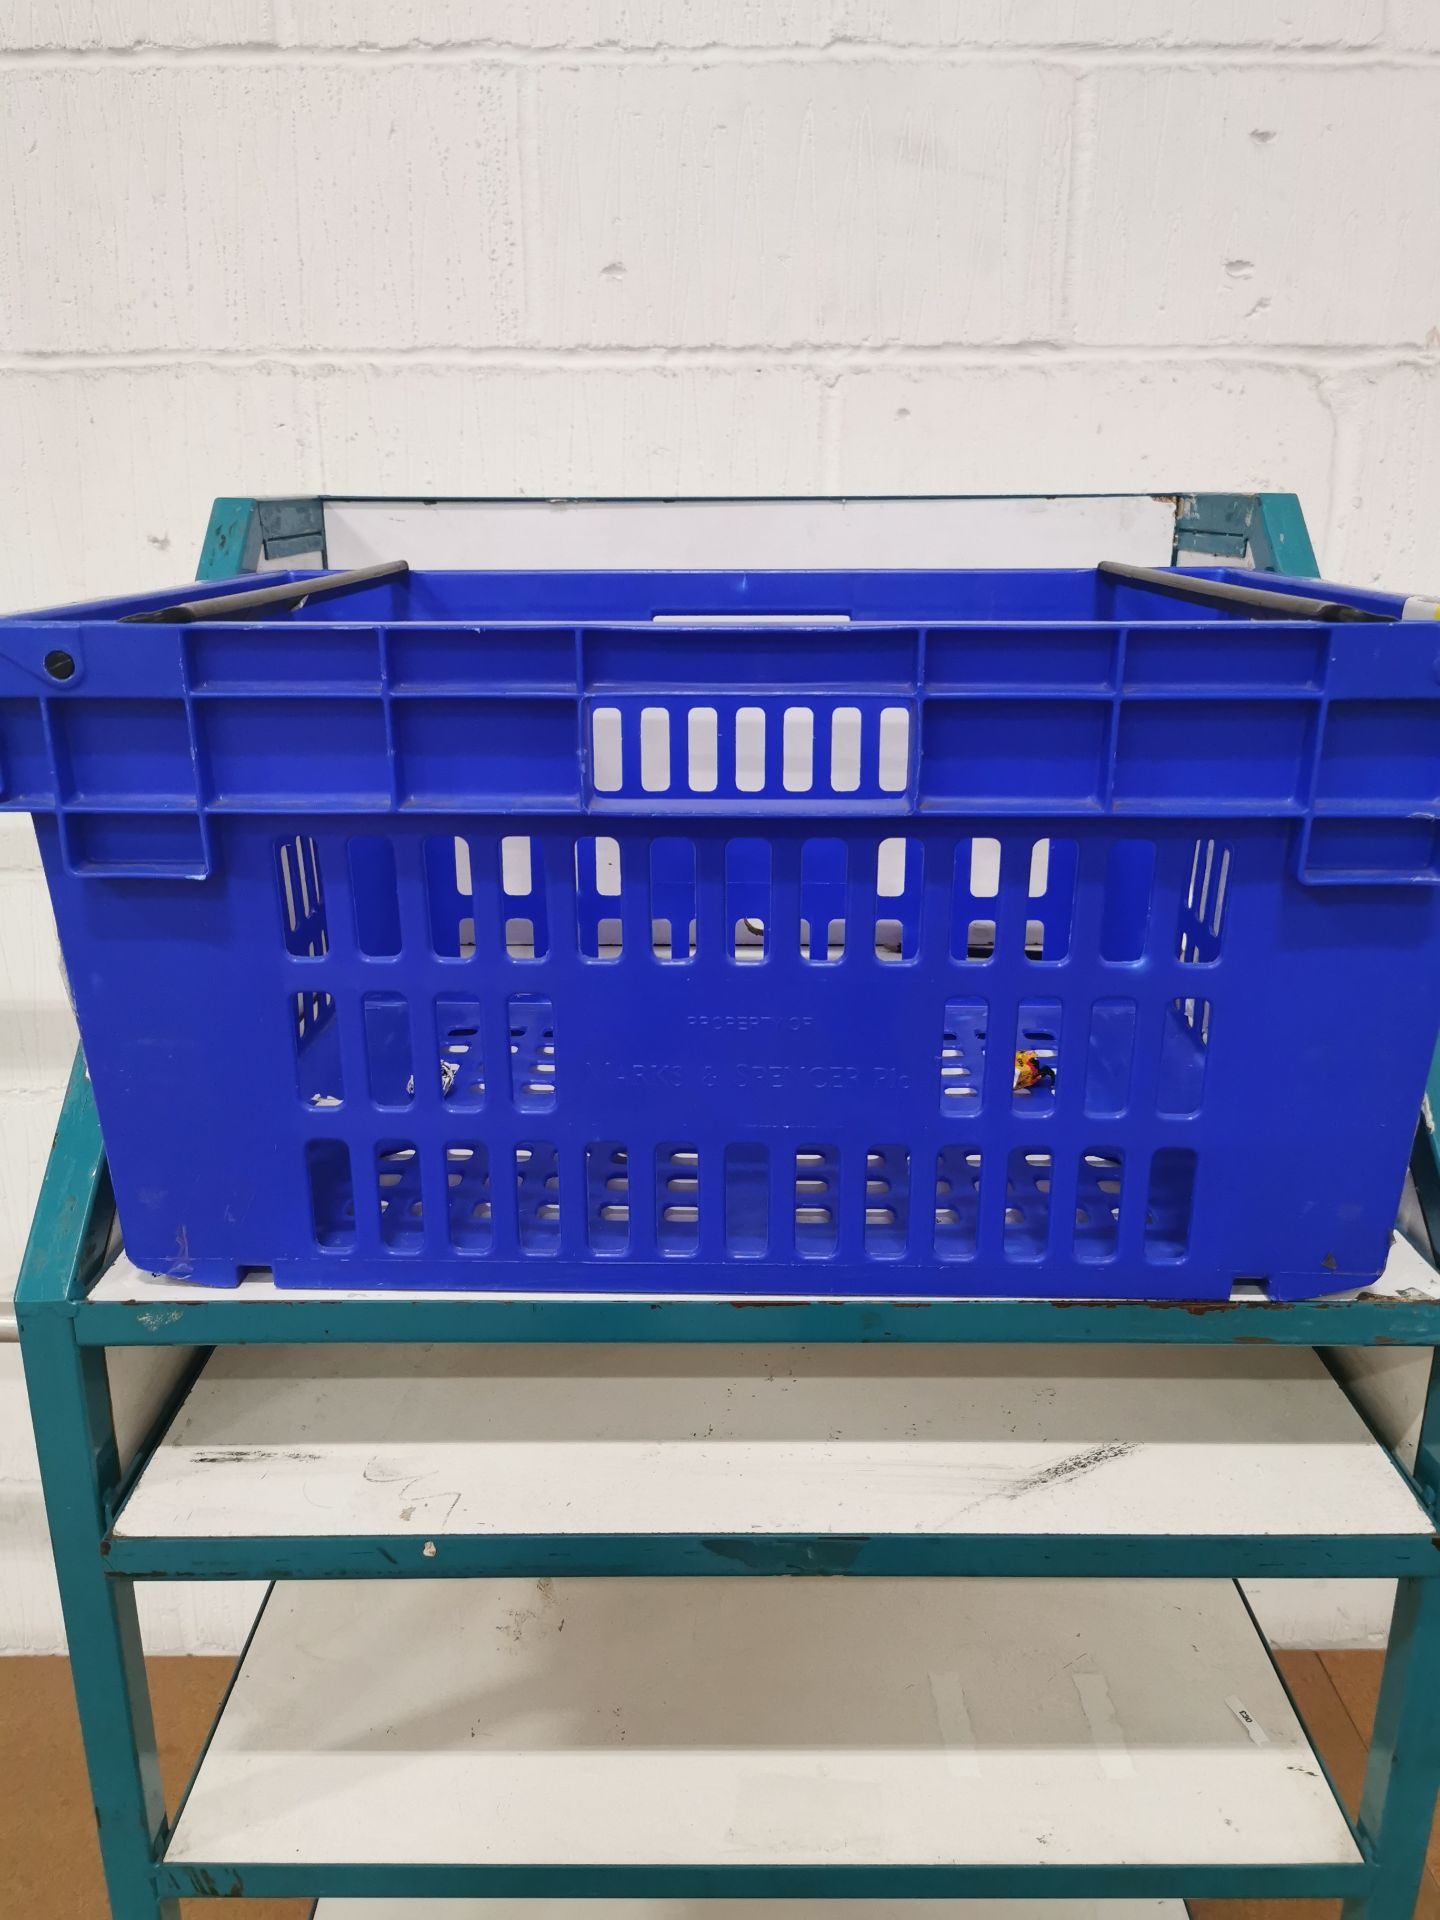 Pallet of 60 x 55Ltr Ventilated stacking & nesting crates/totes from M&S. - Image 4 of 4